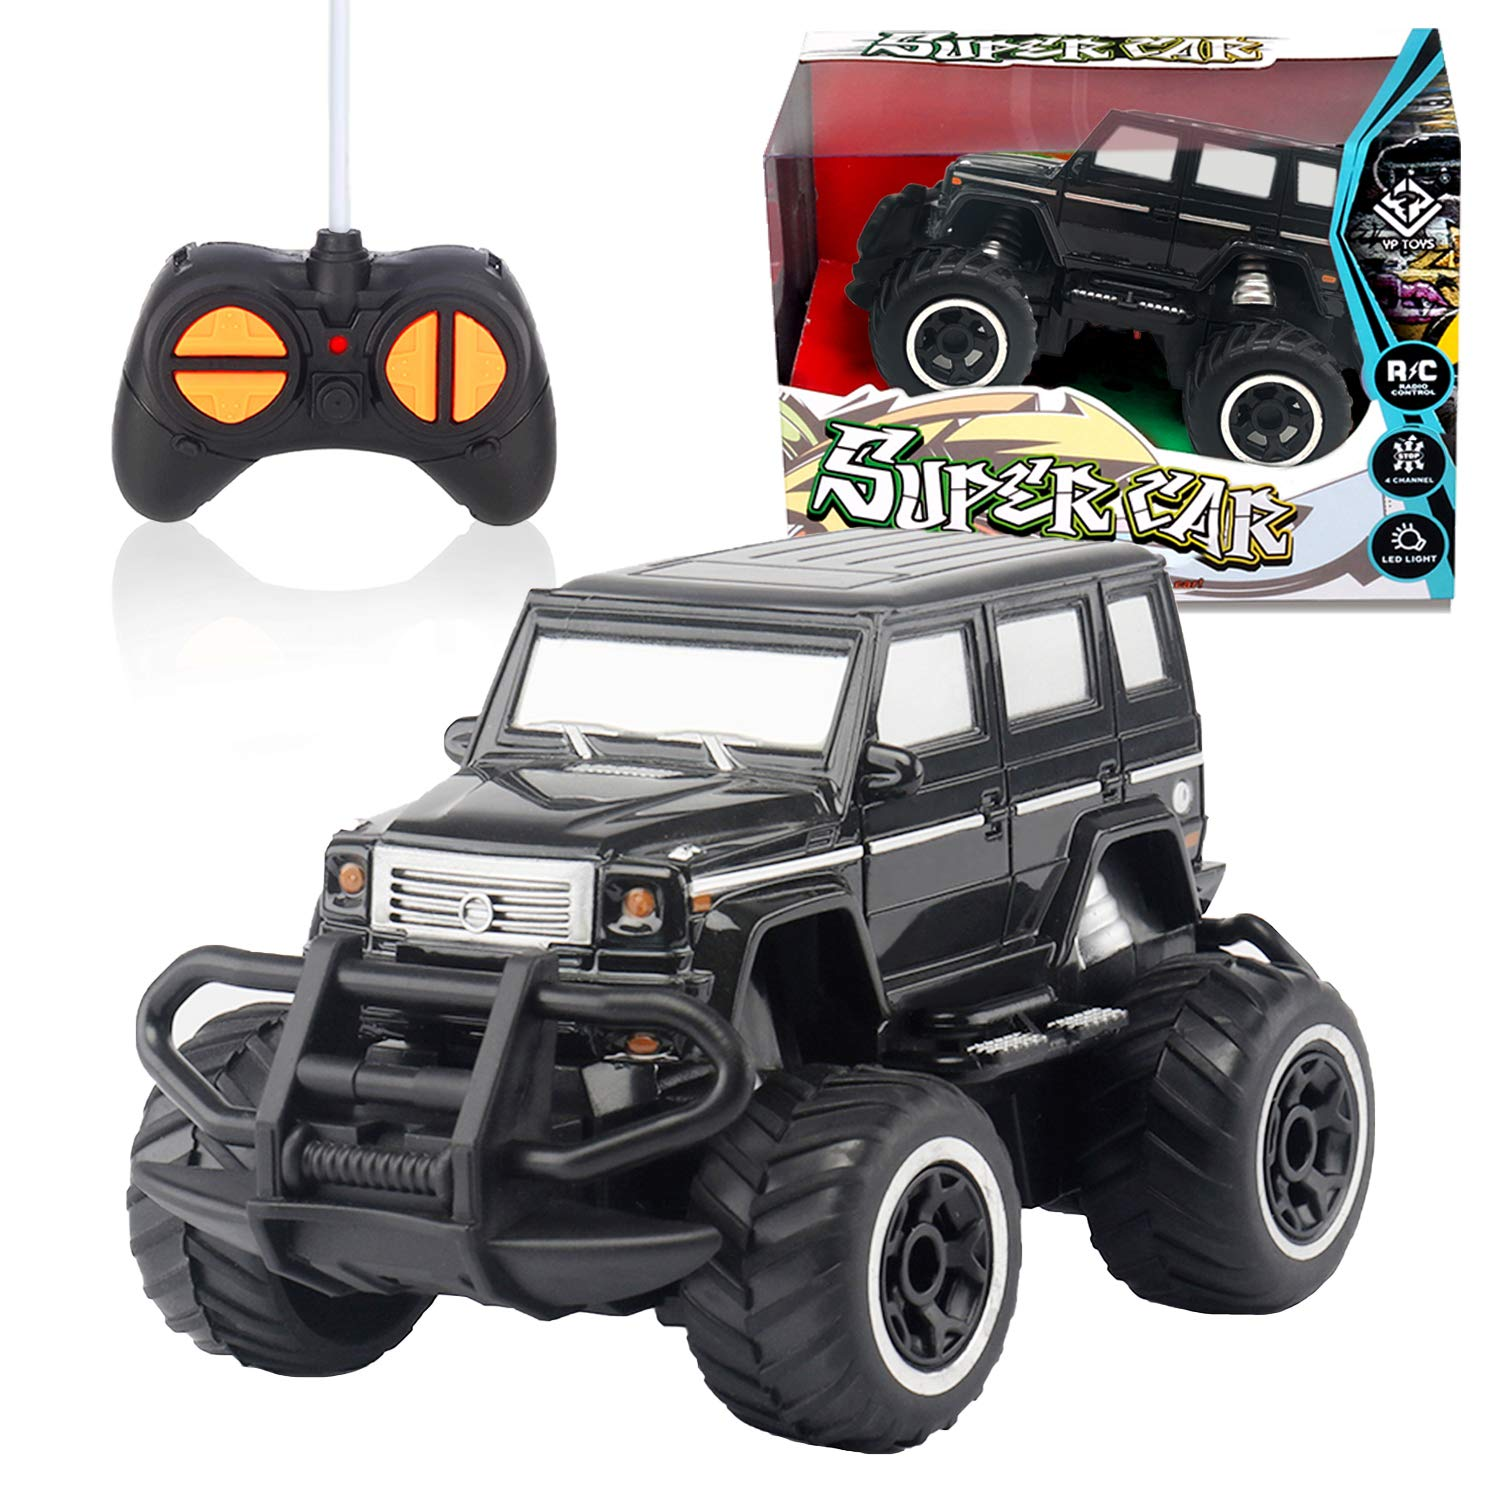 Mycaron Little Boy Gifts Remote Control Car for Boys 3-5 ,Toys Vehicles RC Trucks for 3-5 Year Old Boys,Kids Toys Toddlers Cars 4WD 1/43 Scale(BlackBenz)